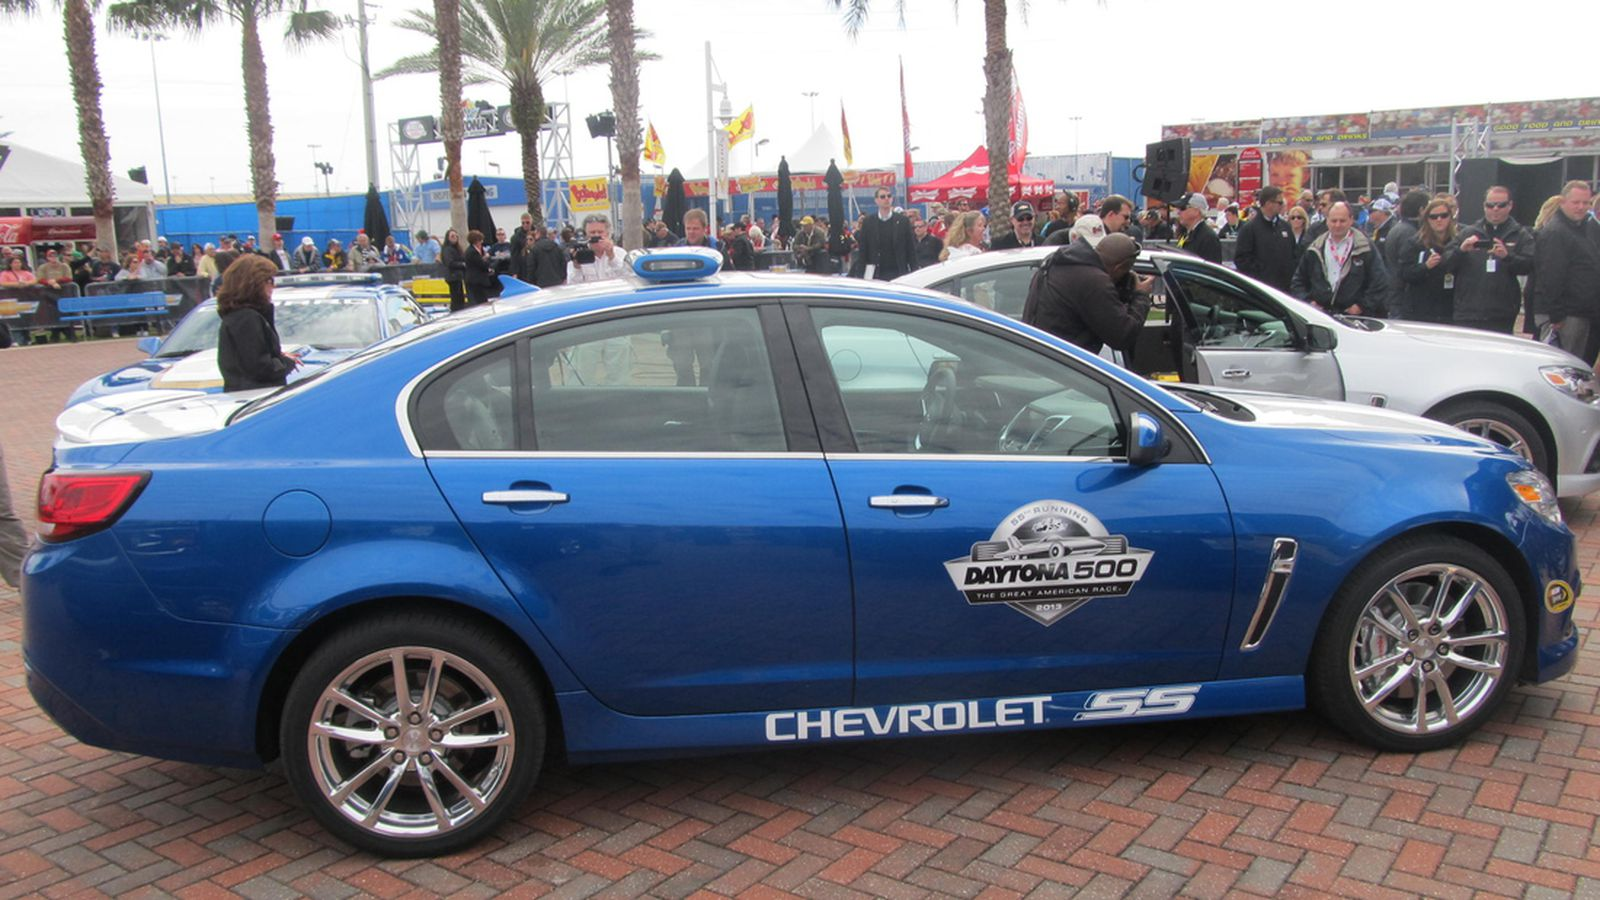 Chevrolet Unveils 2014 Production Chevrolet Ss As Official